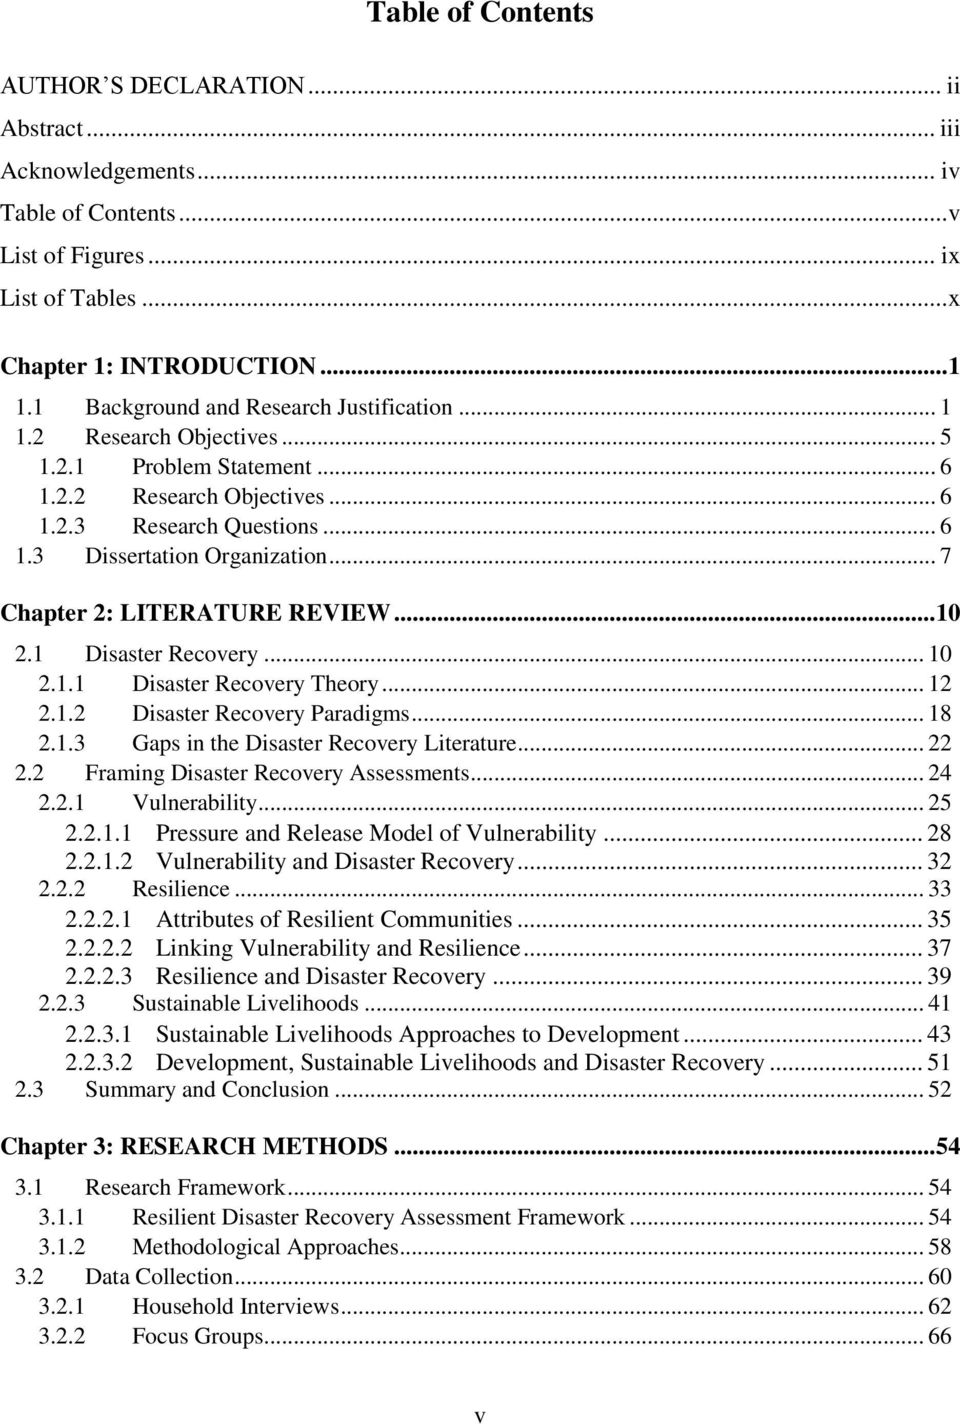 .. 7 Chapter 2: LITERATURE REVIEW... 10 2.1 Disaster Recovery... 10 2.1.1 Disaster Recovery Theory... 12 2.1.2 Disaster Recovery Paradigms... 18 2.1.3 Gaps in the Disaster Recovery Literature... 22 2.